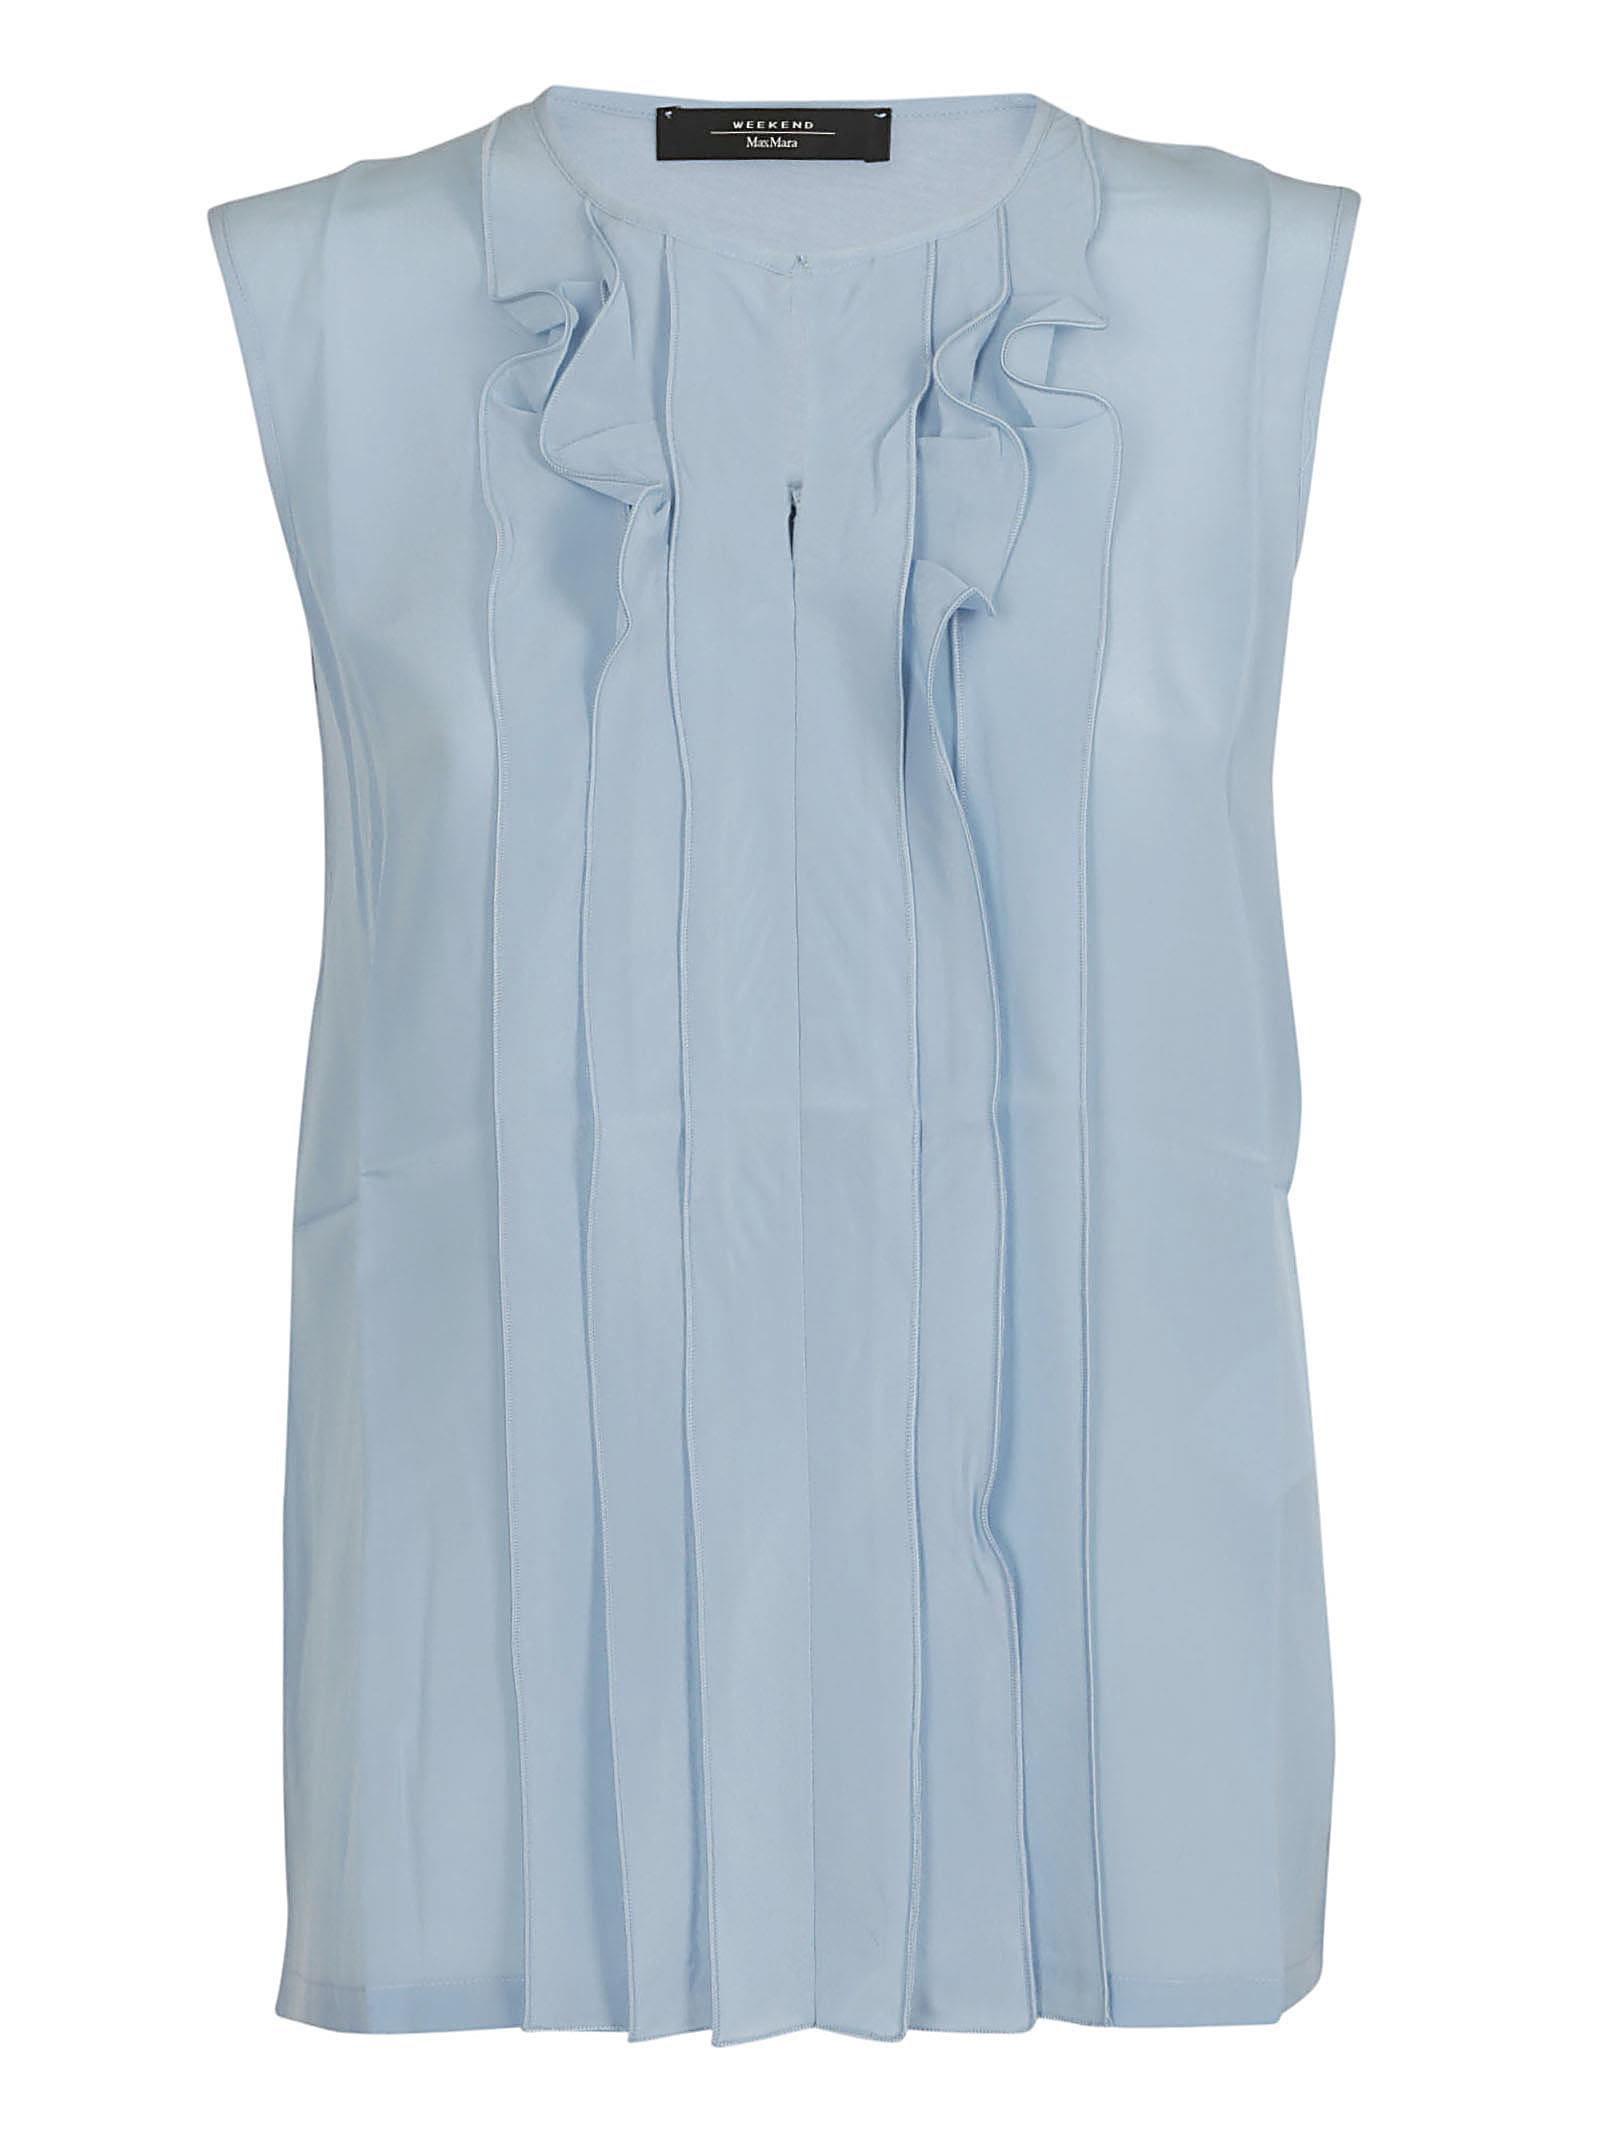 Weekend Max Mara Ruffle-detailed Sleeveless Blouse